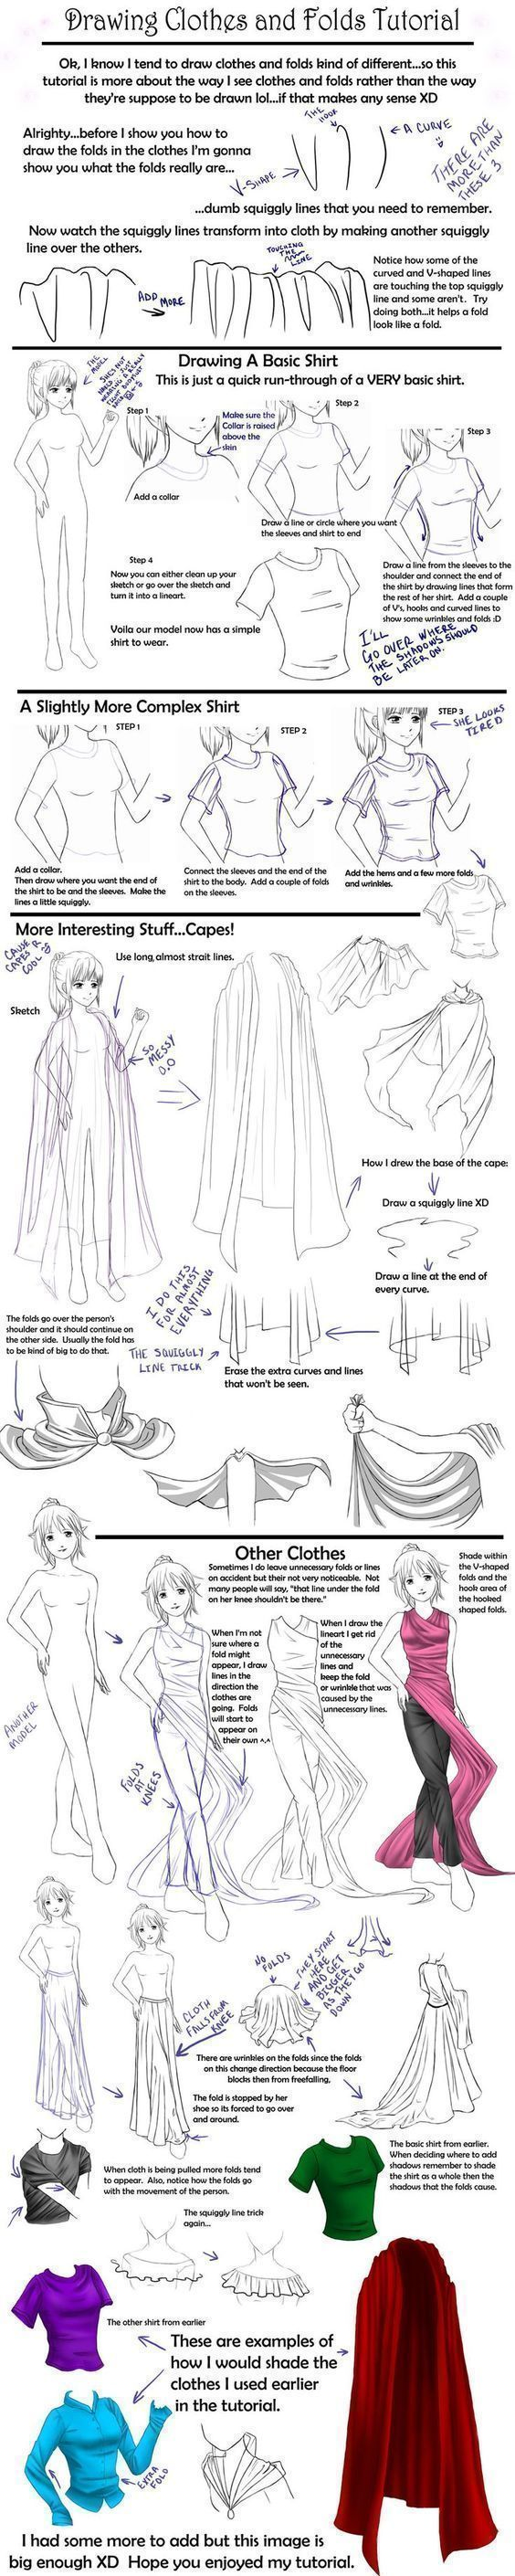 How to draw Clothes tutorial,Manga clothes, Anime Clothes, how to draw fabric, drawing folds, kawaii, girl, Japanese, anime, manga tut:: #mangadrawing